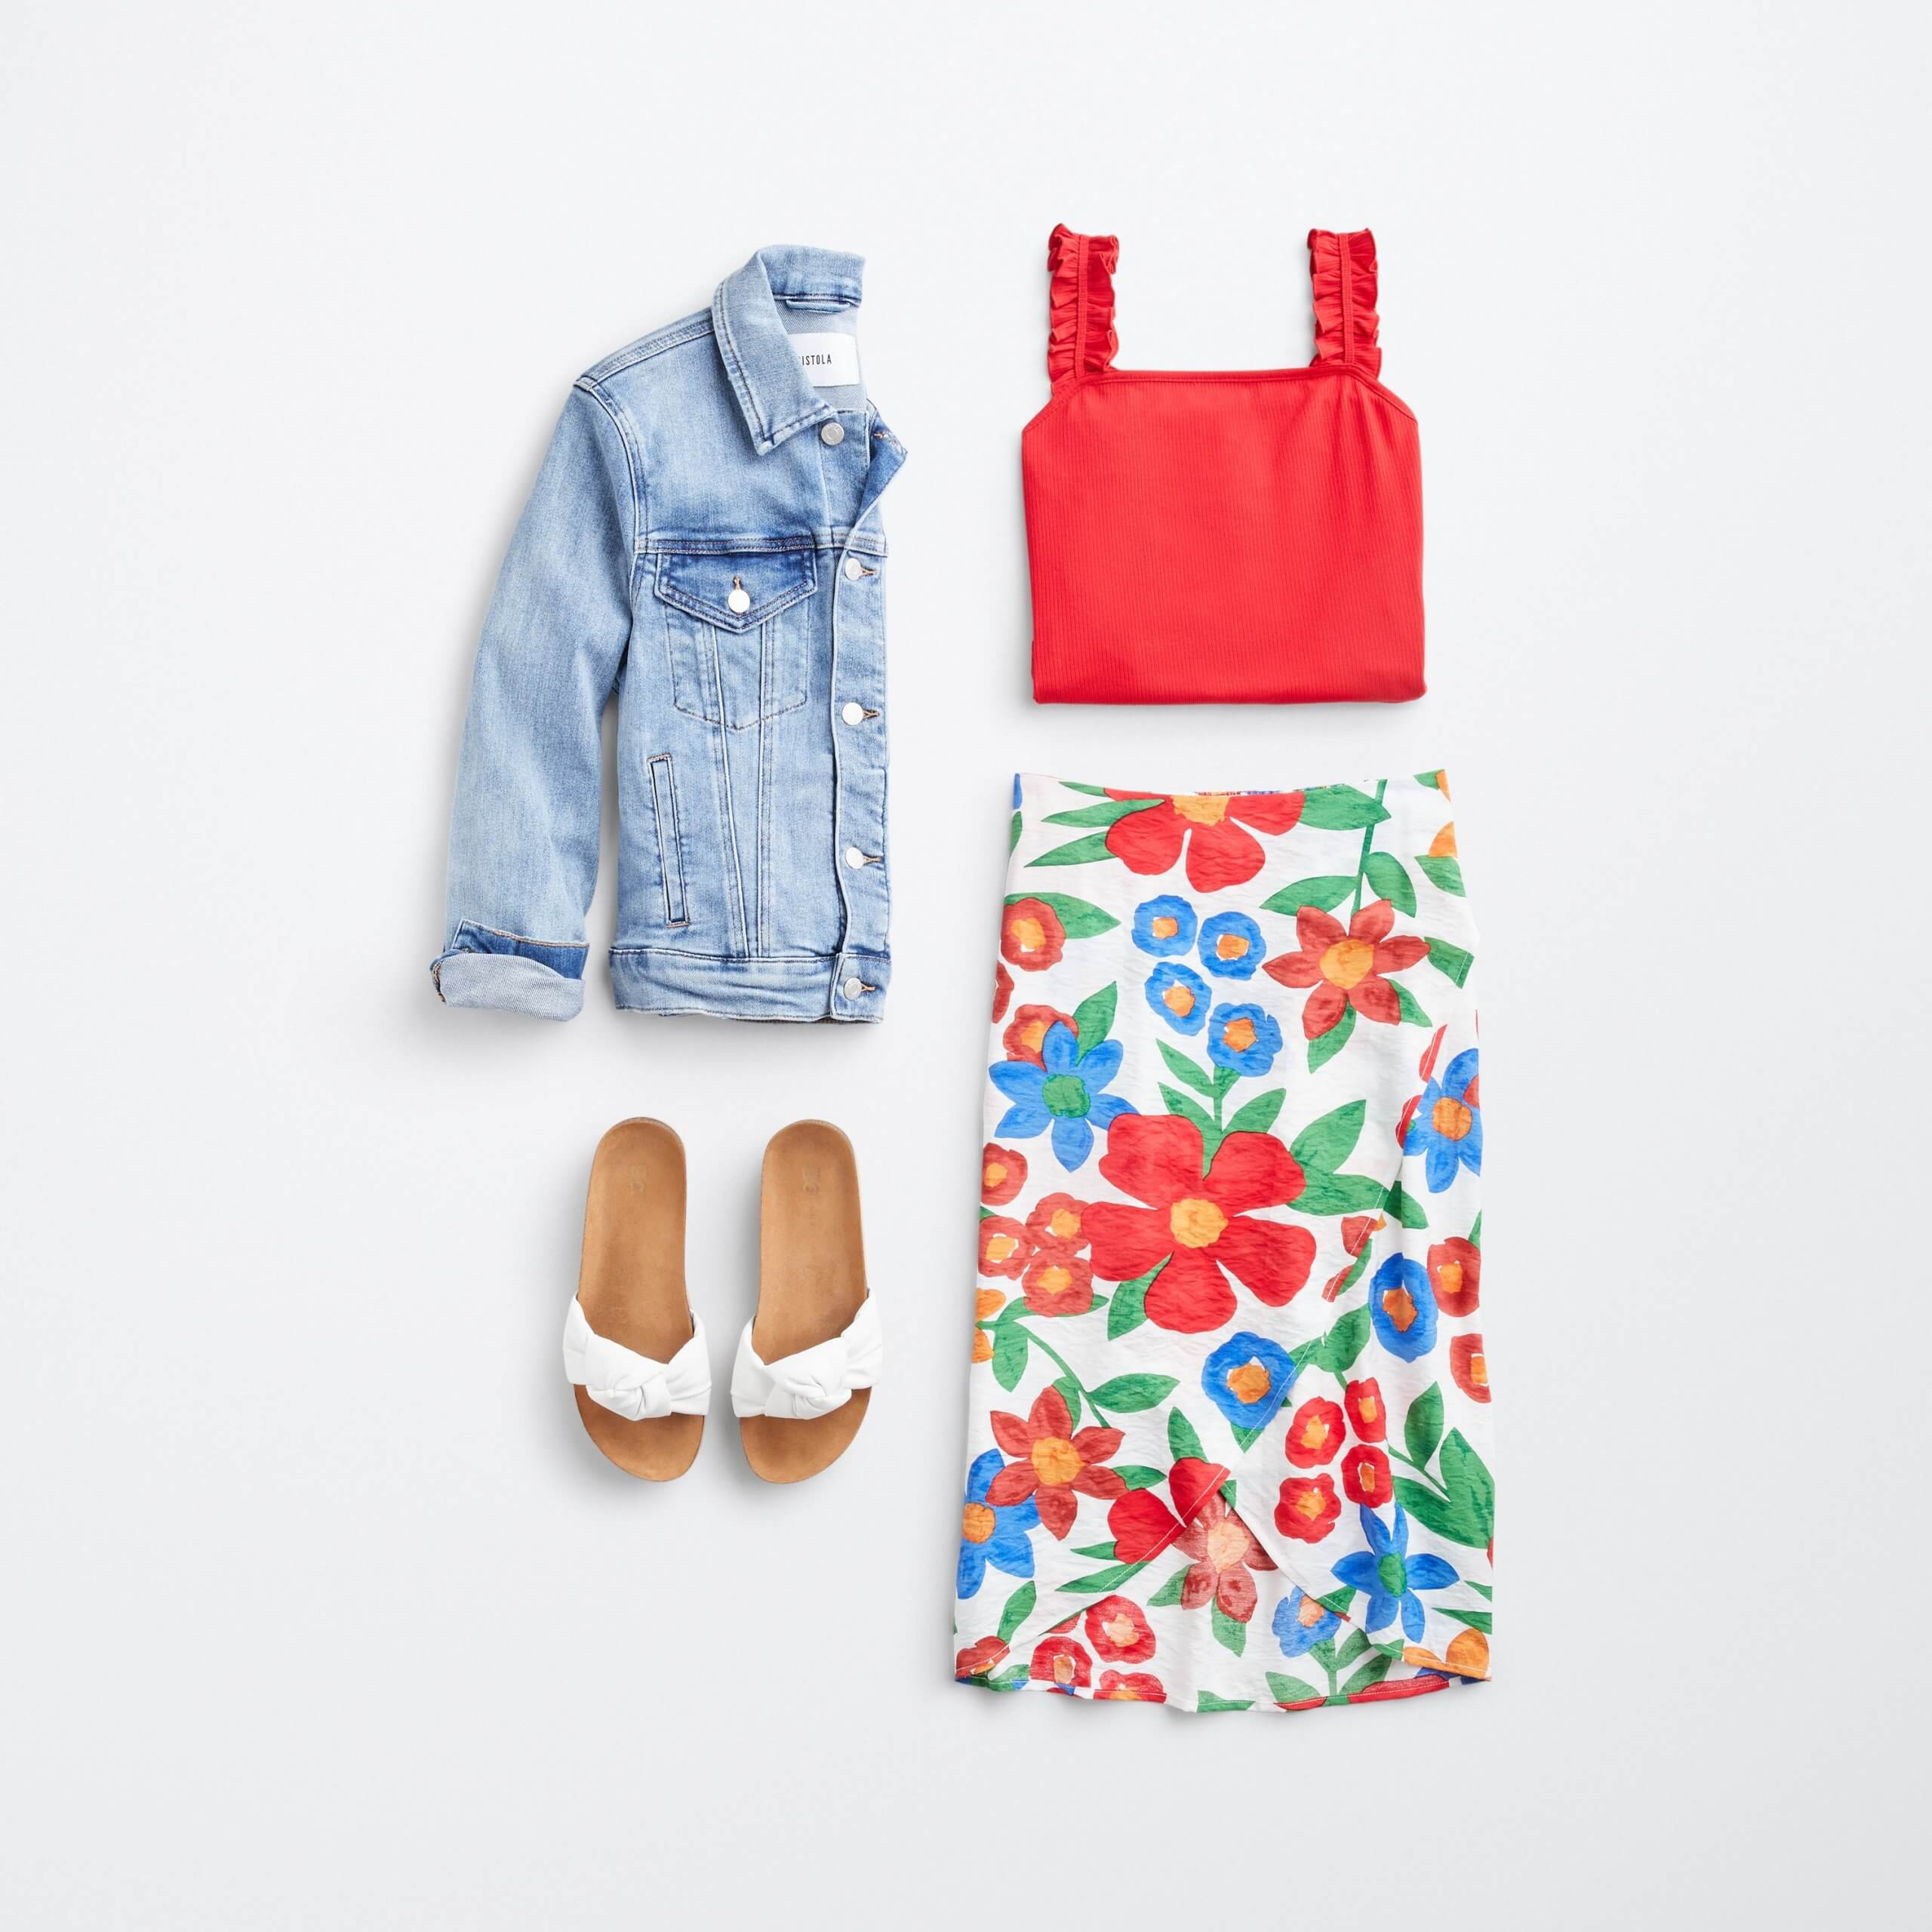 Stitch Fix women's outfit laydown featuring colorful floral print skirt, pink cropped tank, white slide sandals and denim jacket..